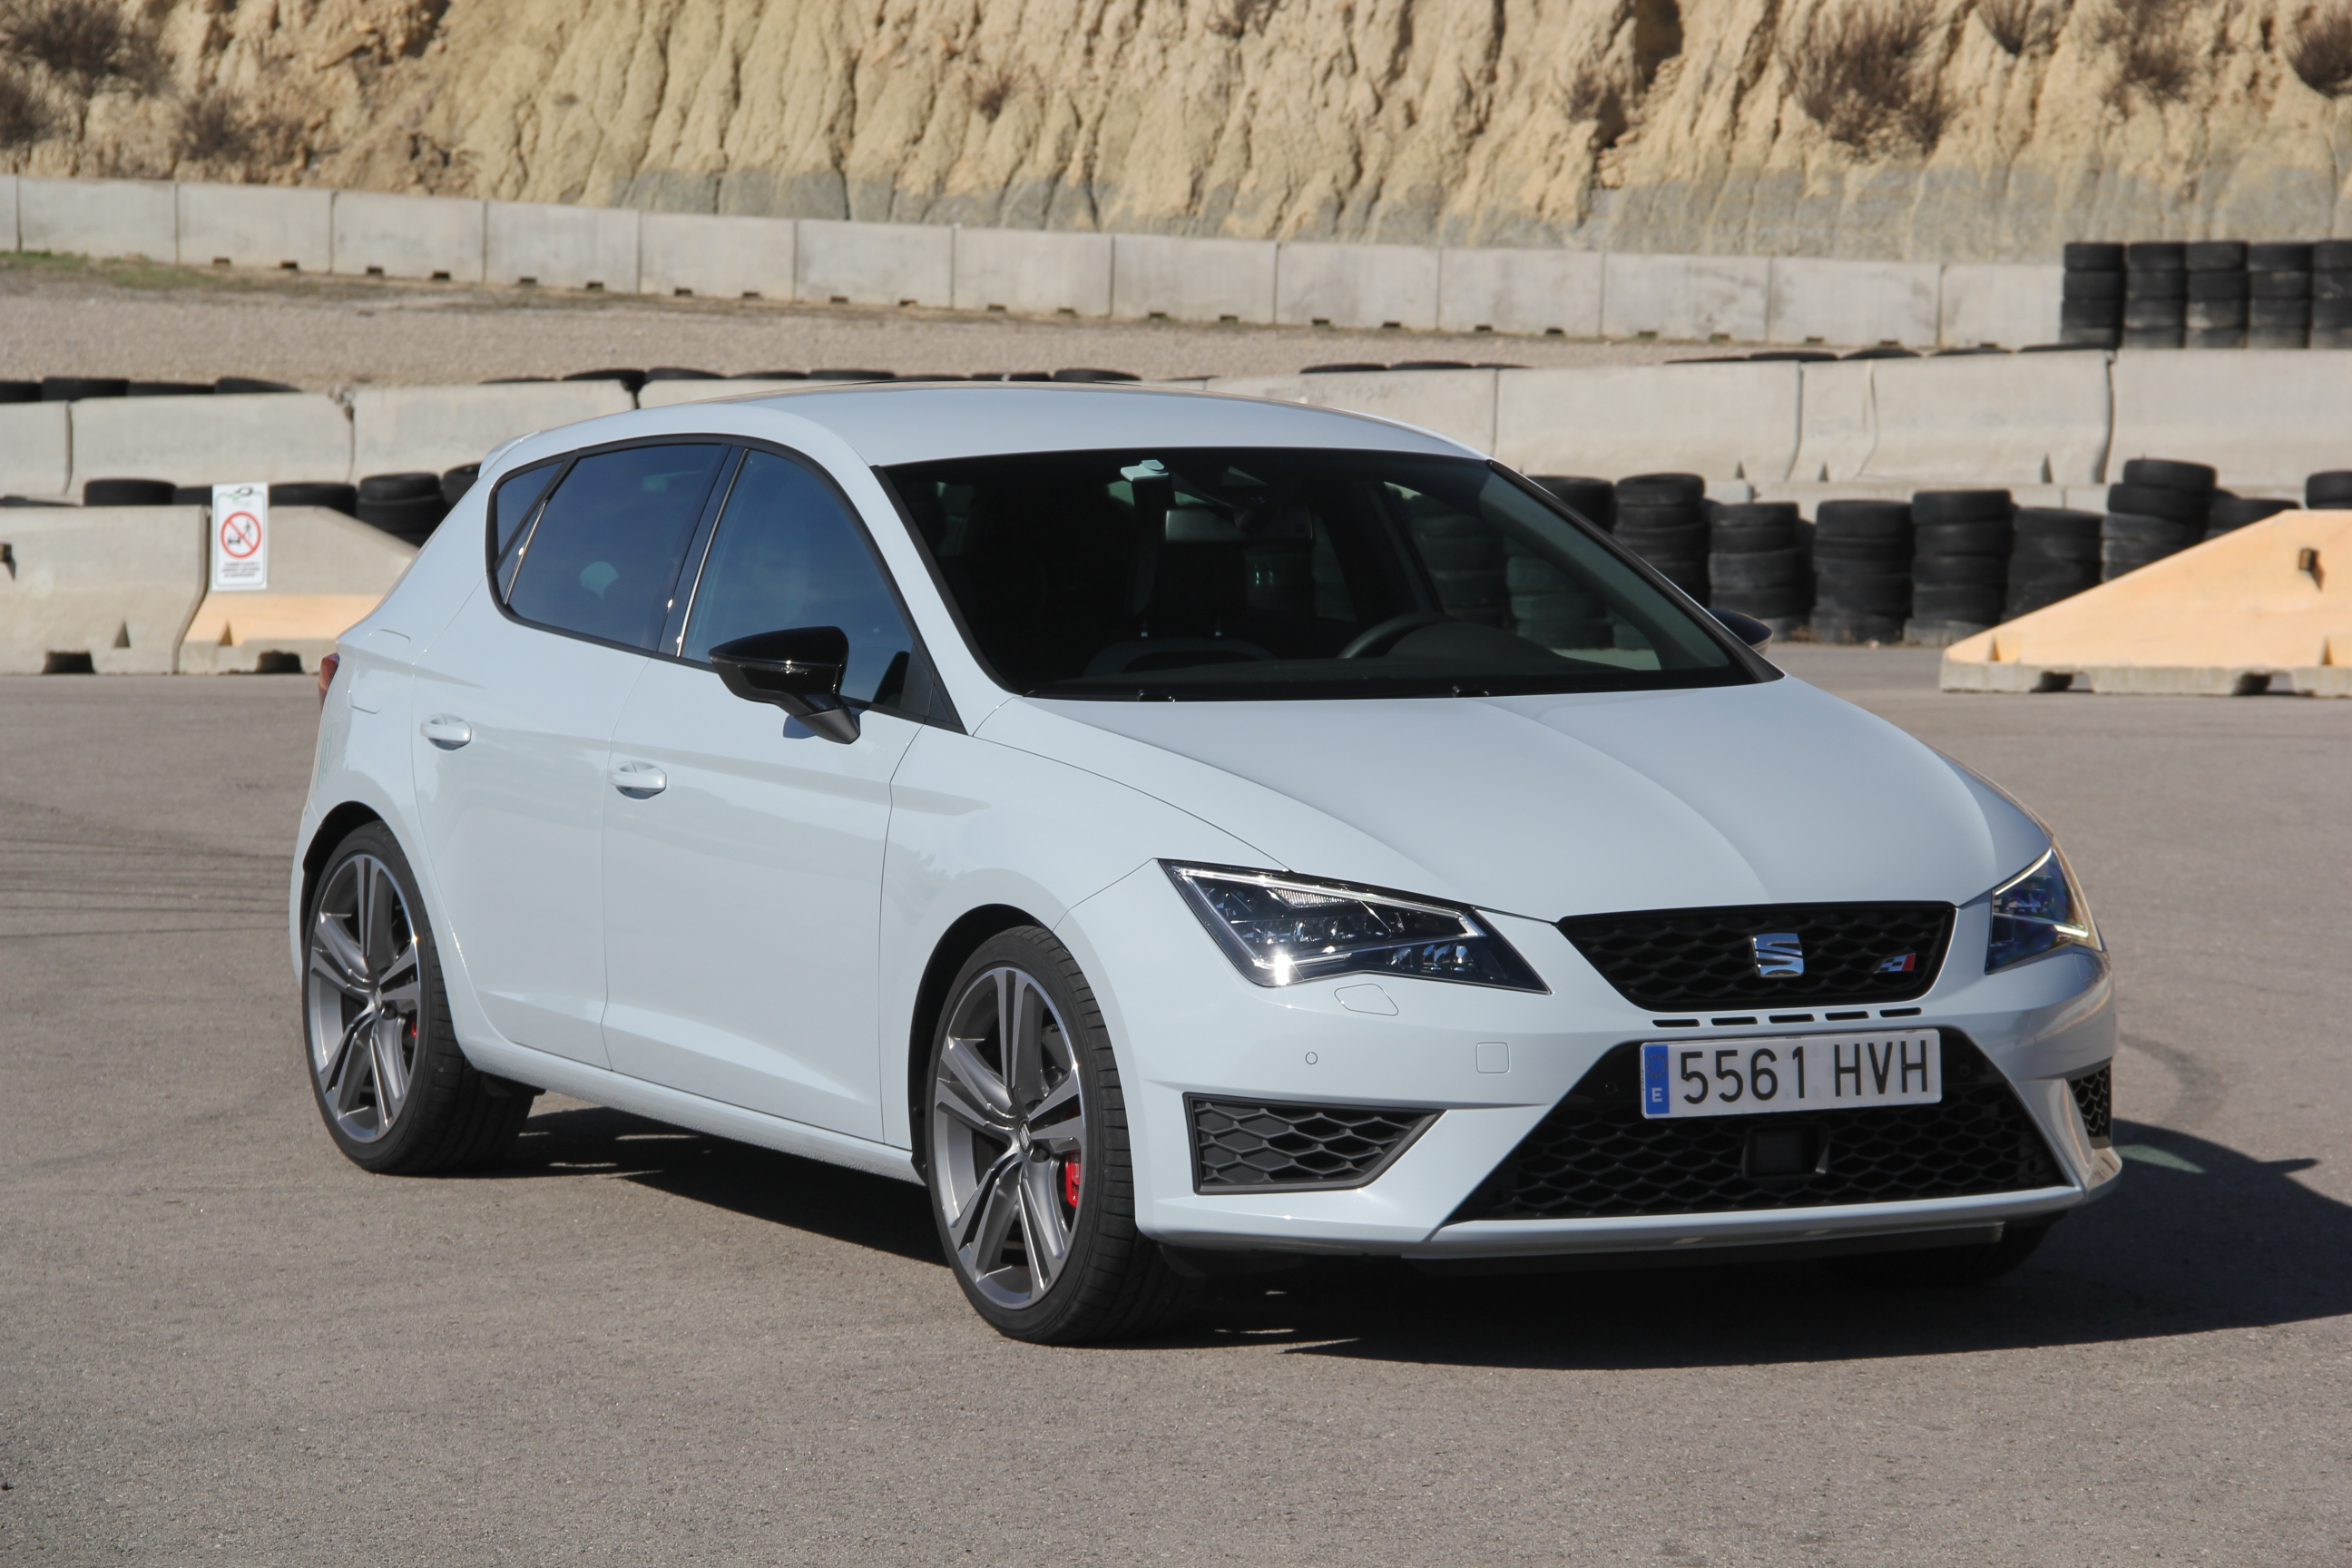 seat leon 3 cupra essais fiabilit avis photos prix. Black Bedroom Furniture Sets. Home Design Ideas